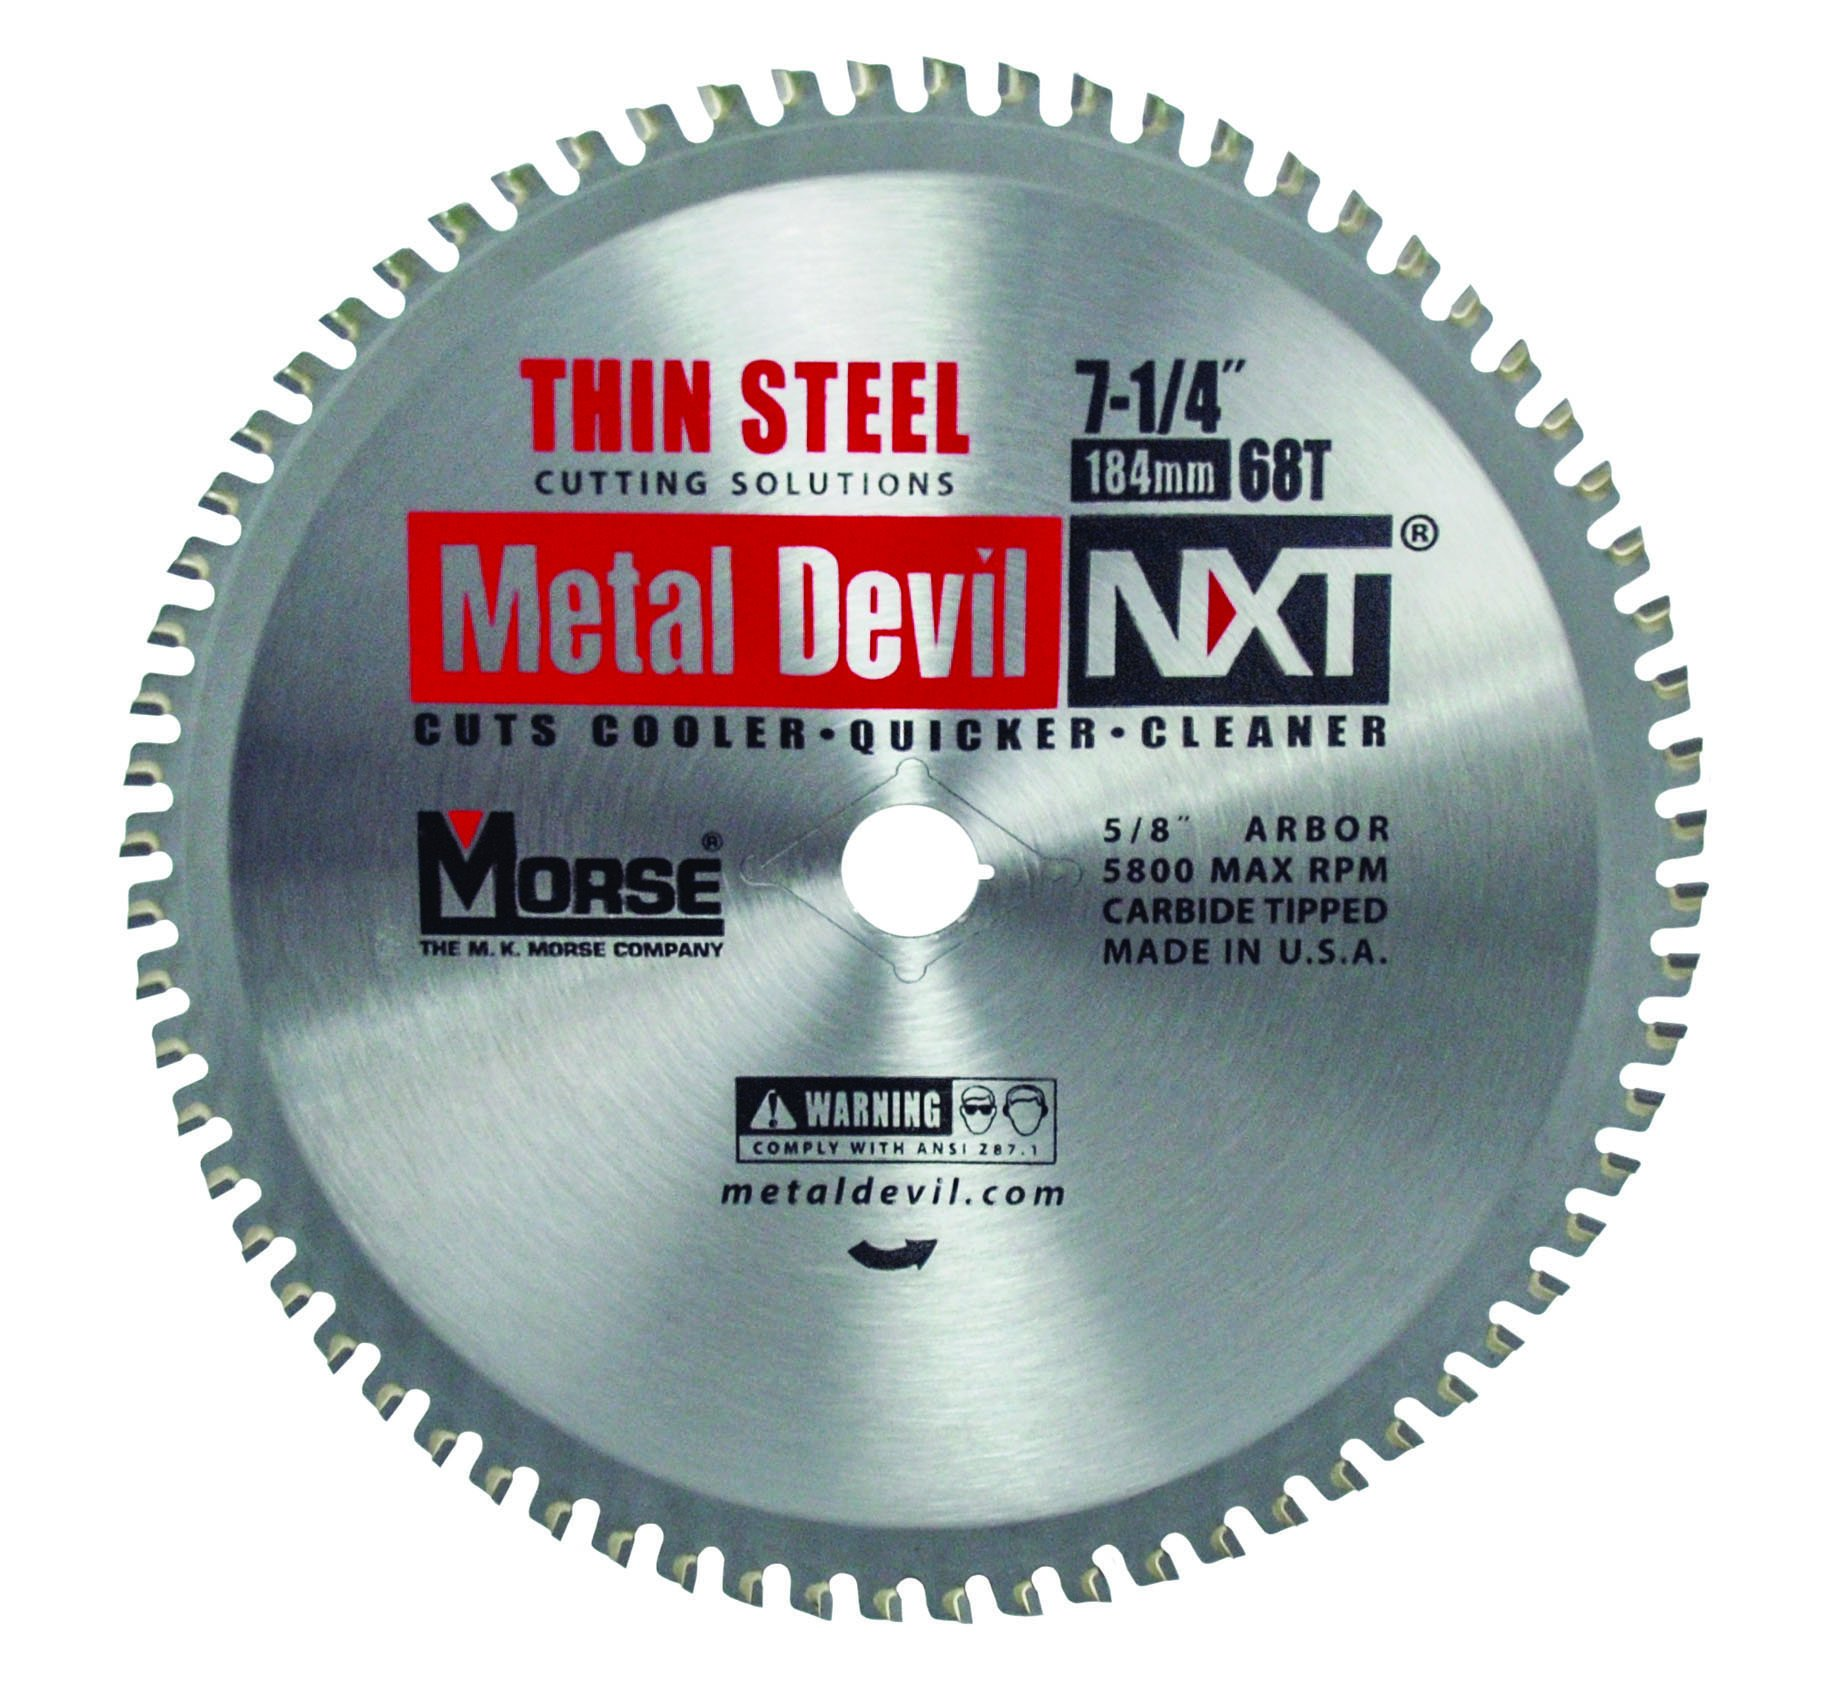 Disco Sierra MK MORSE CSM72568NTSC Metal Devil Thin Steel